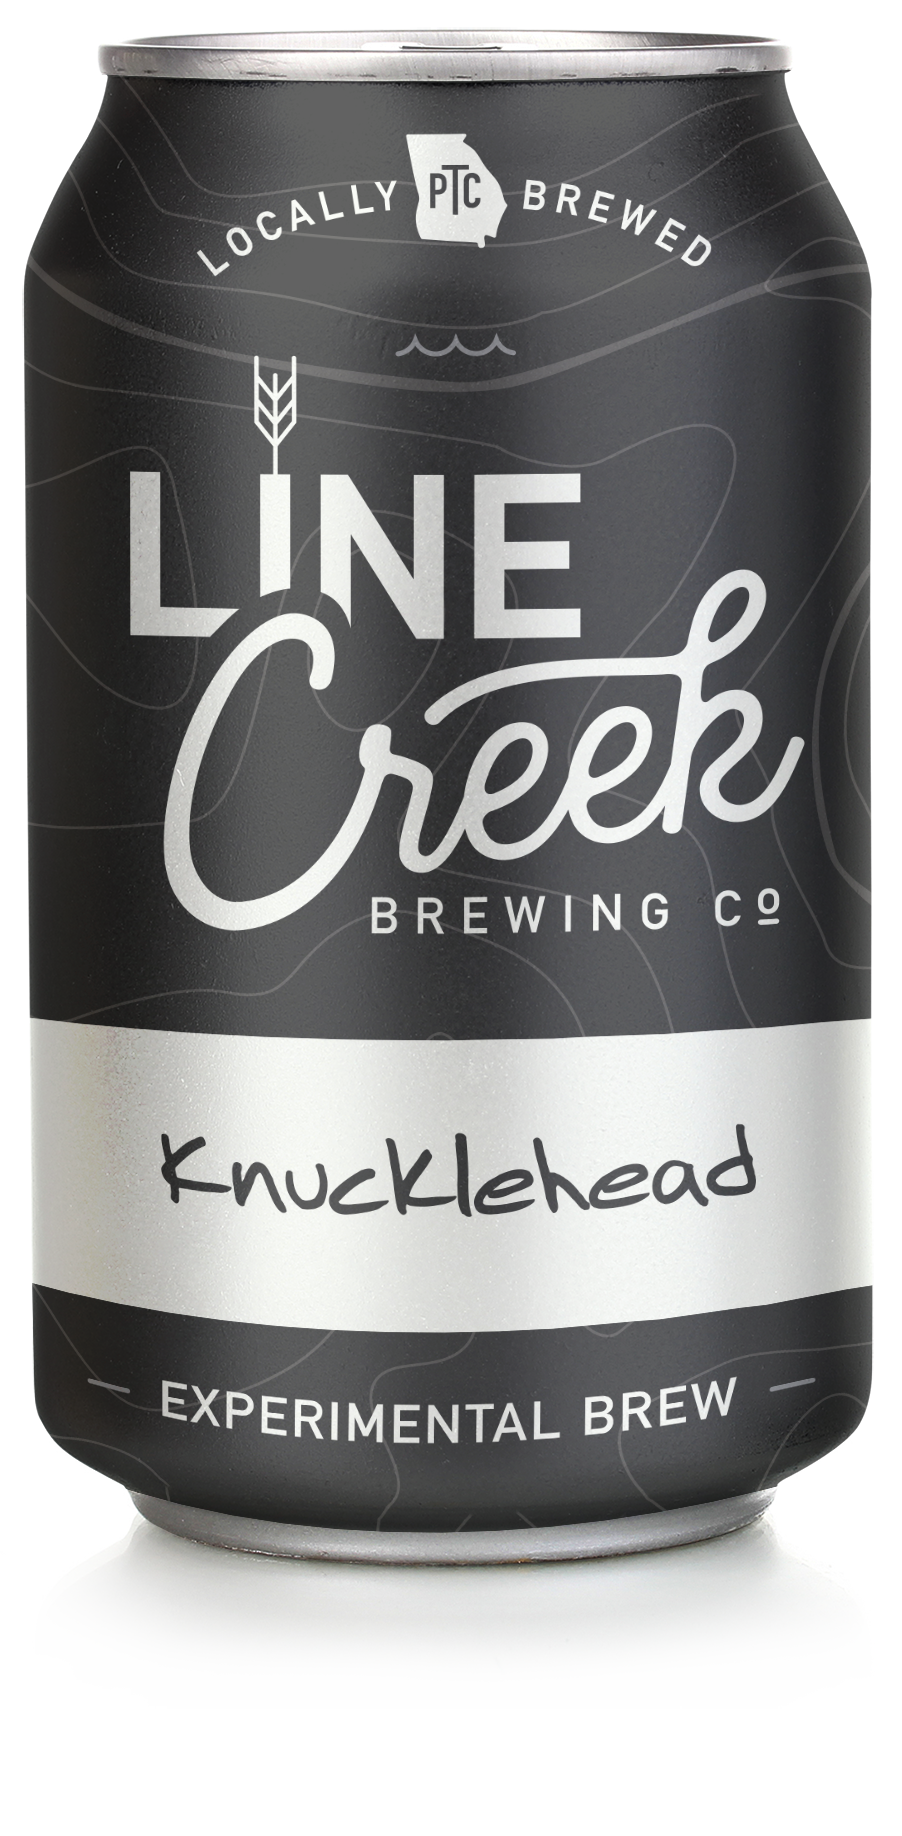 https://linecreekbrewing.com/wp-content/uploads/2019/03/knucklehead.png